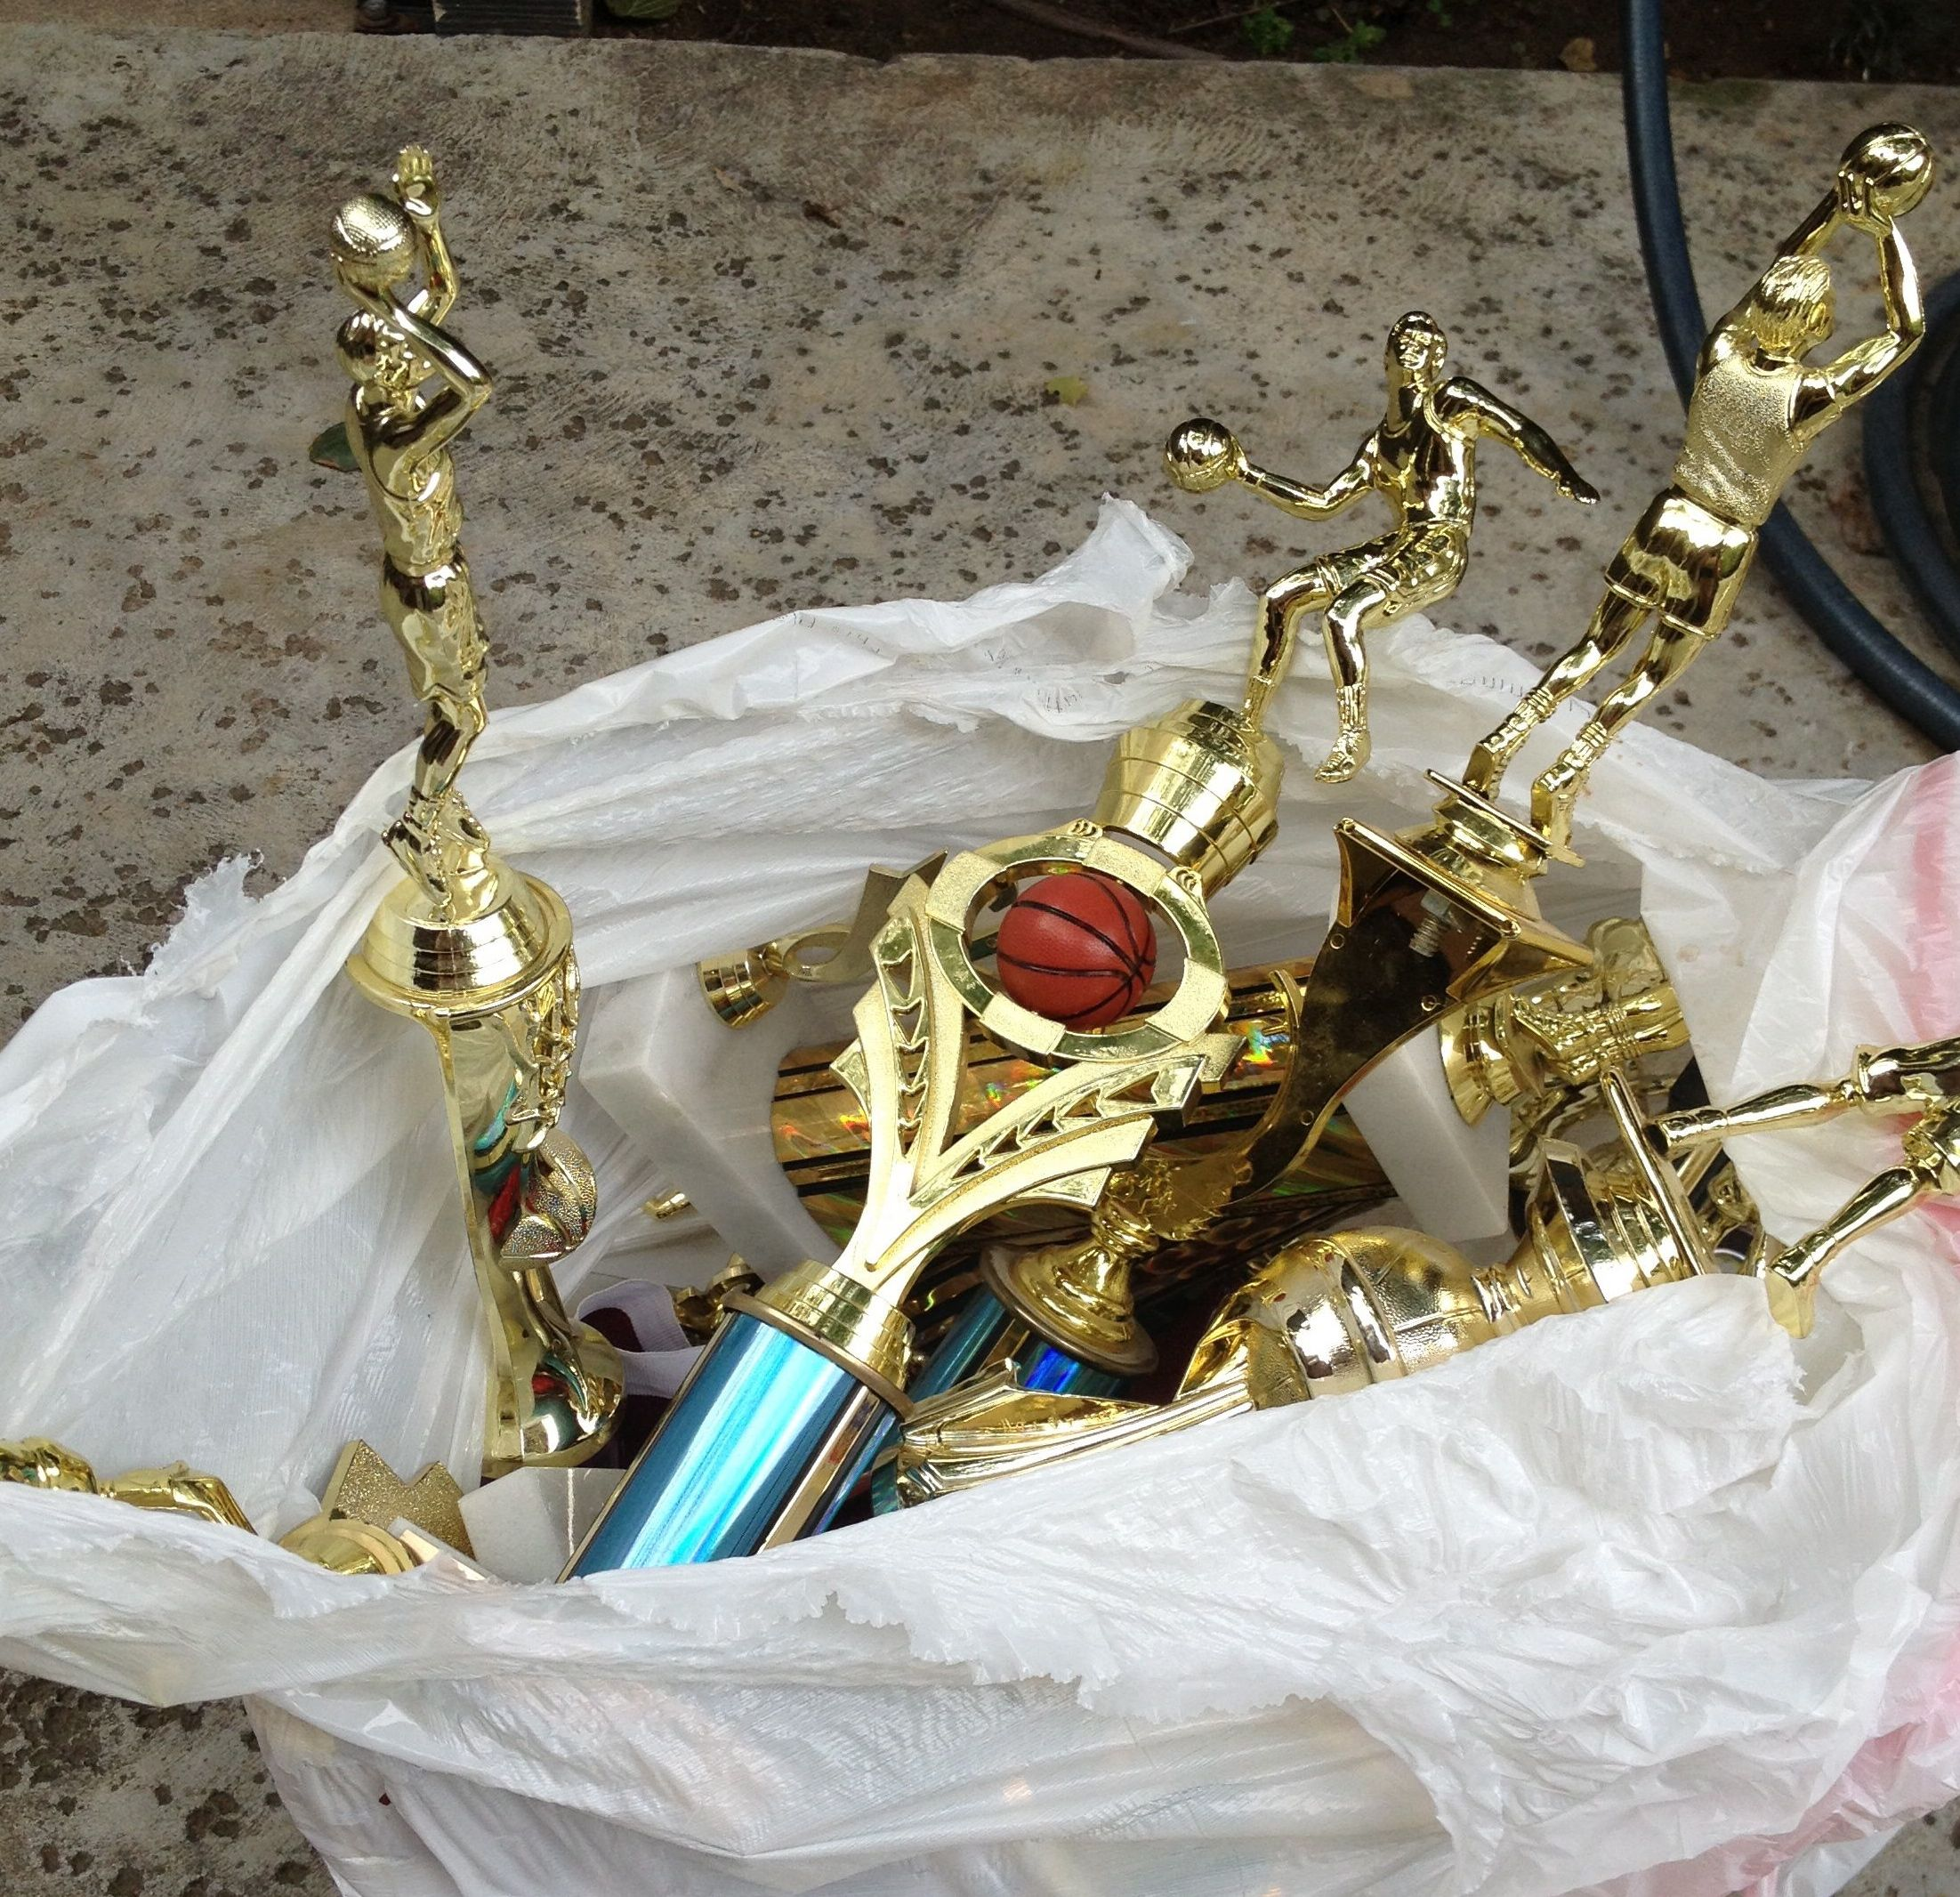 Participation trophies in the trash. It was time.